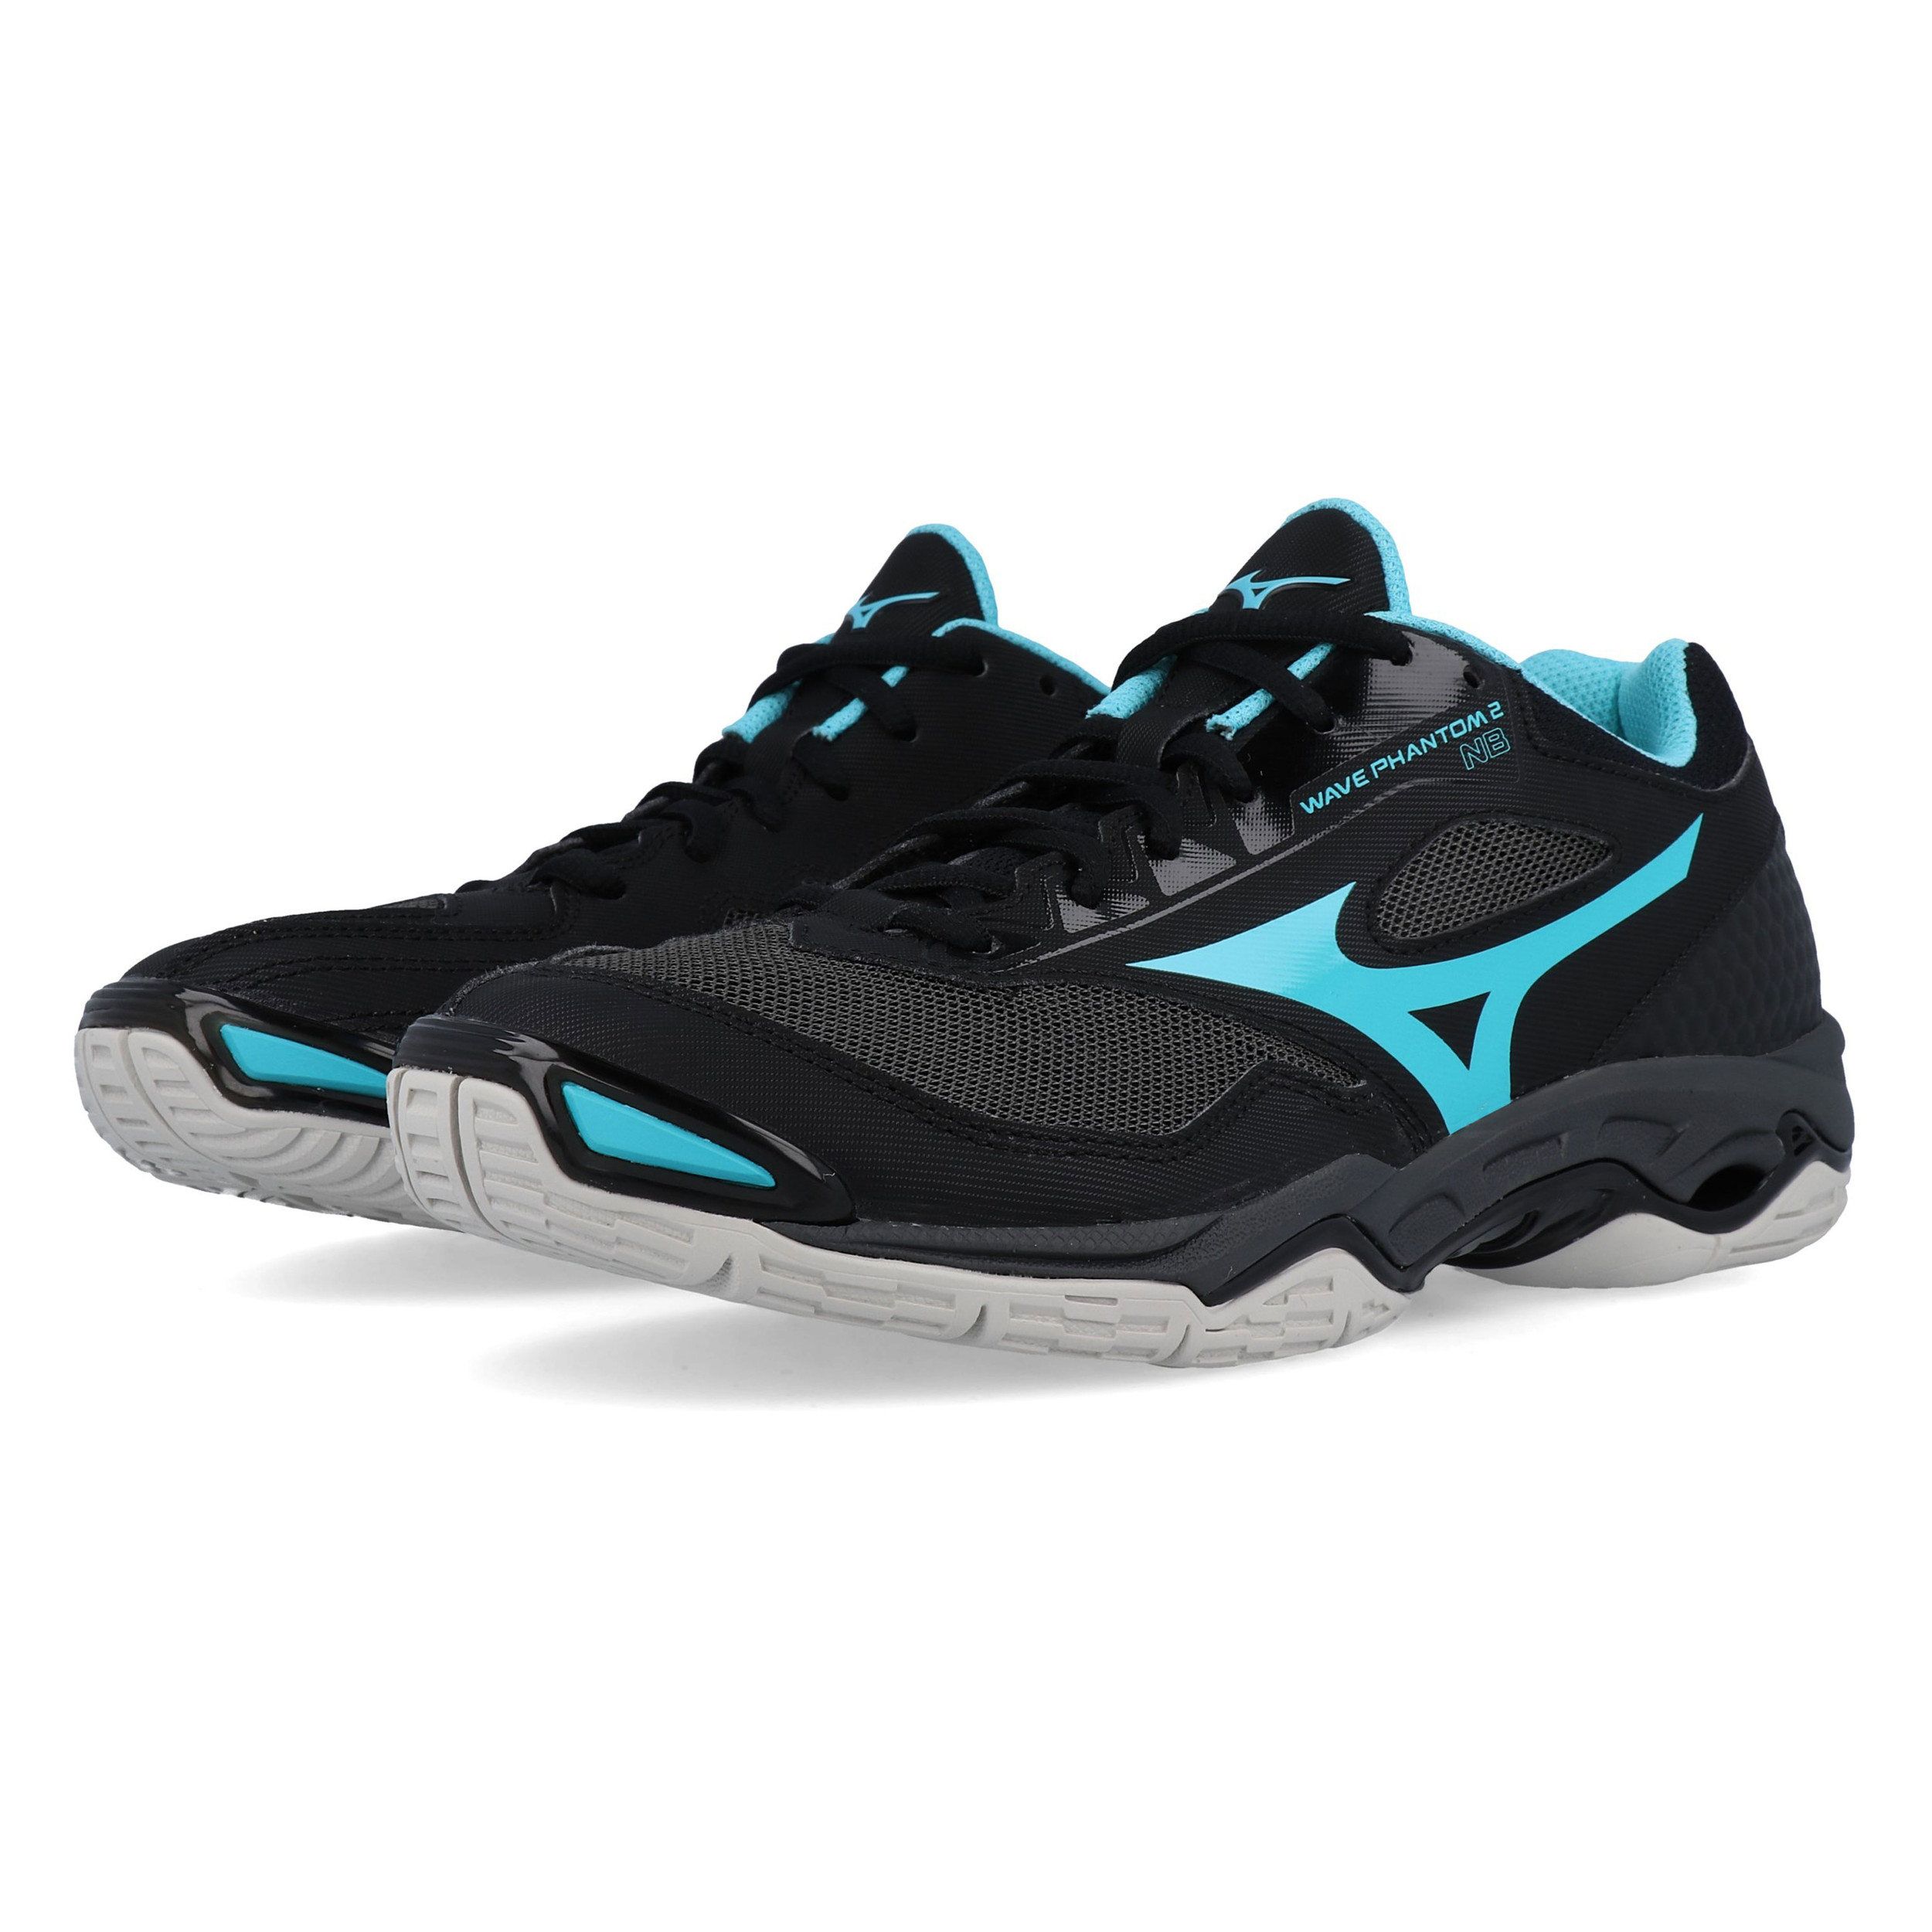 27943fad41eff Details about Mizuno Womens Wave Phantom 2 NB Indoor Court Shoes Black  Sports Netball